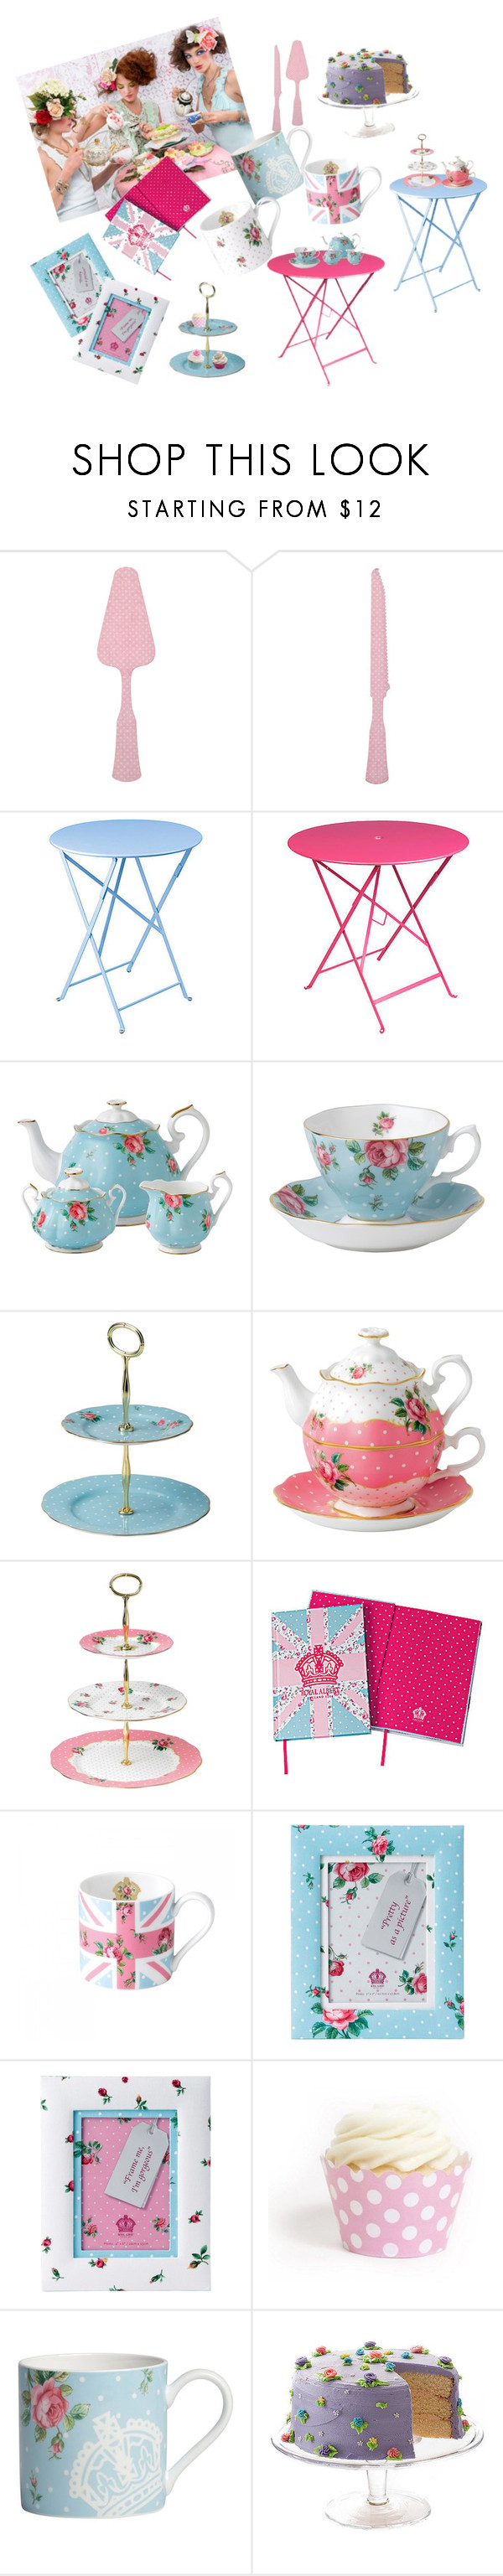 """""""Tea party"""" by alnourah ❤ liked on Polyvore featuring interior, interiors, interior design, home, home decor, interior decorating, Etiquette, Sabre Flatware, Fermob and Royal Albert"""